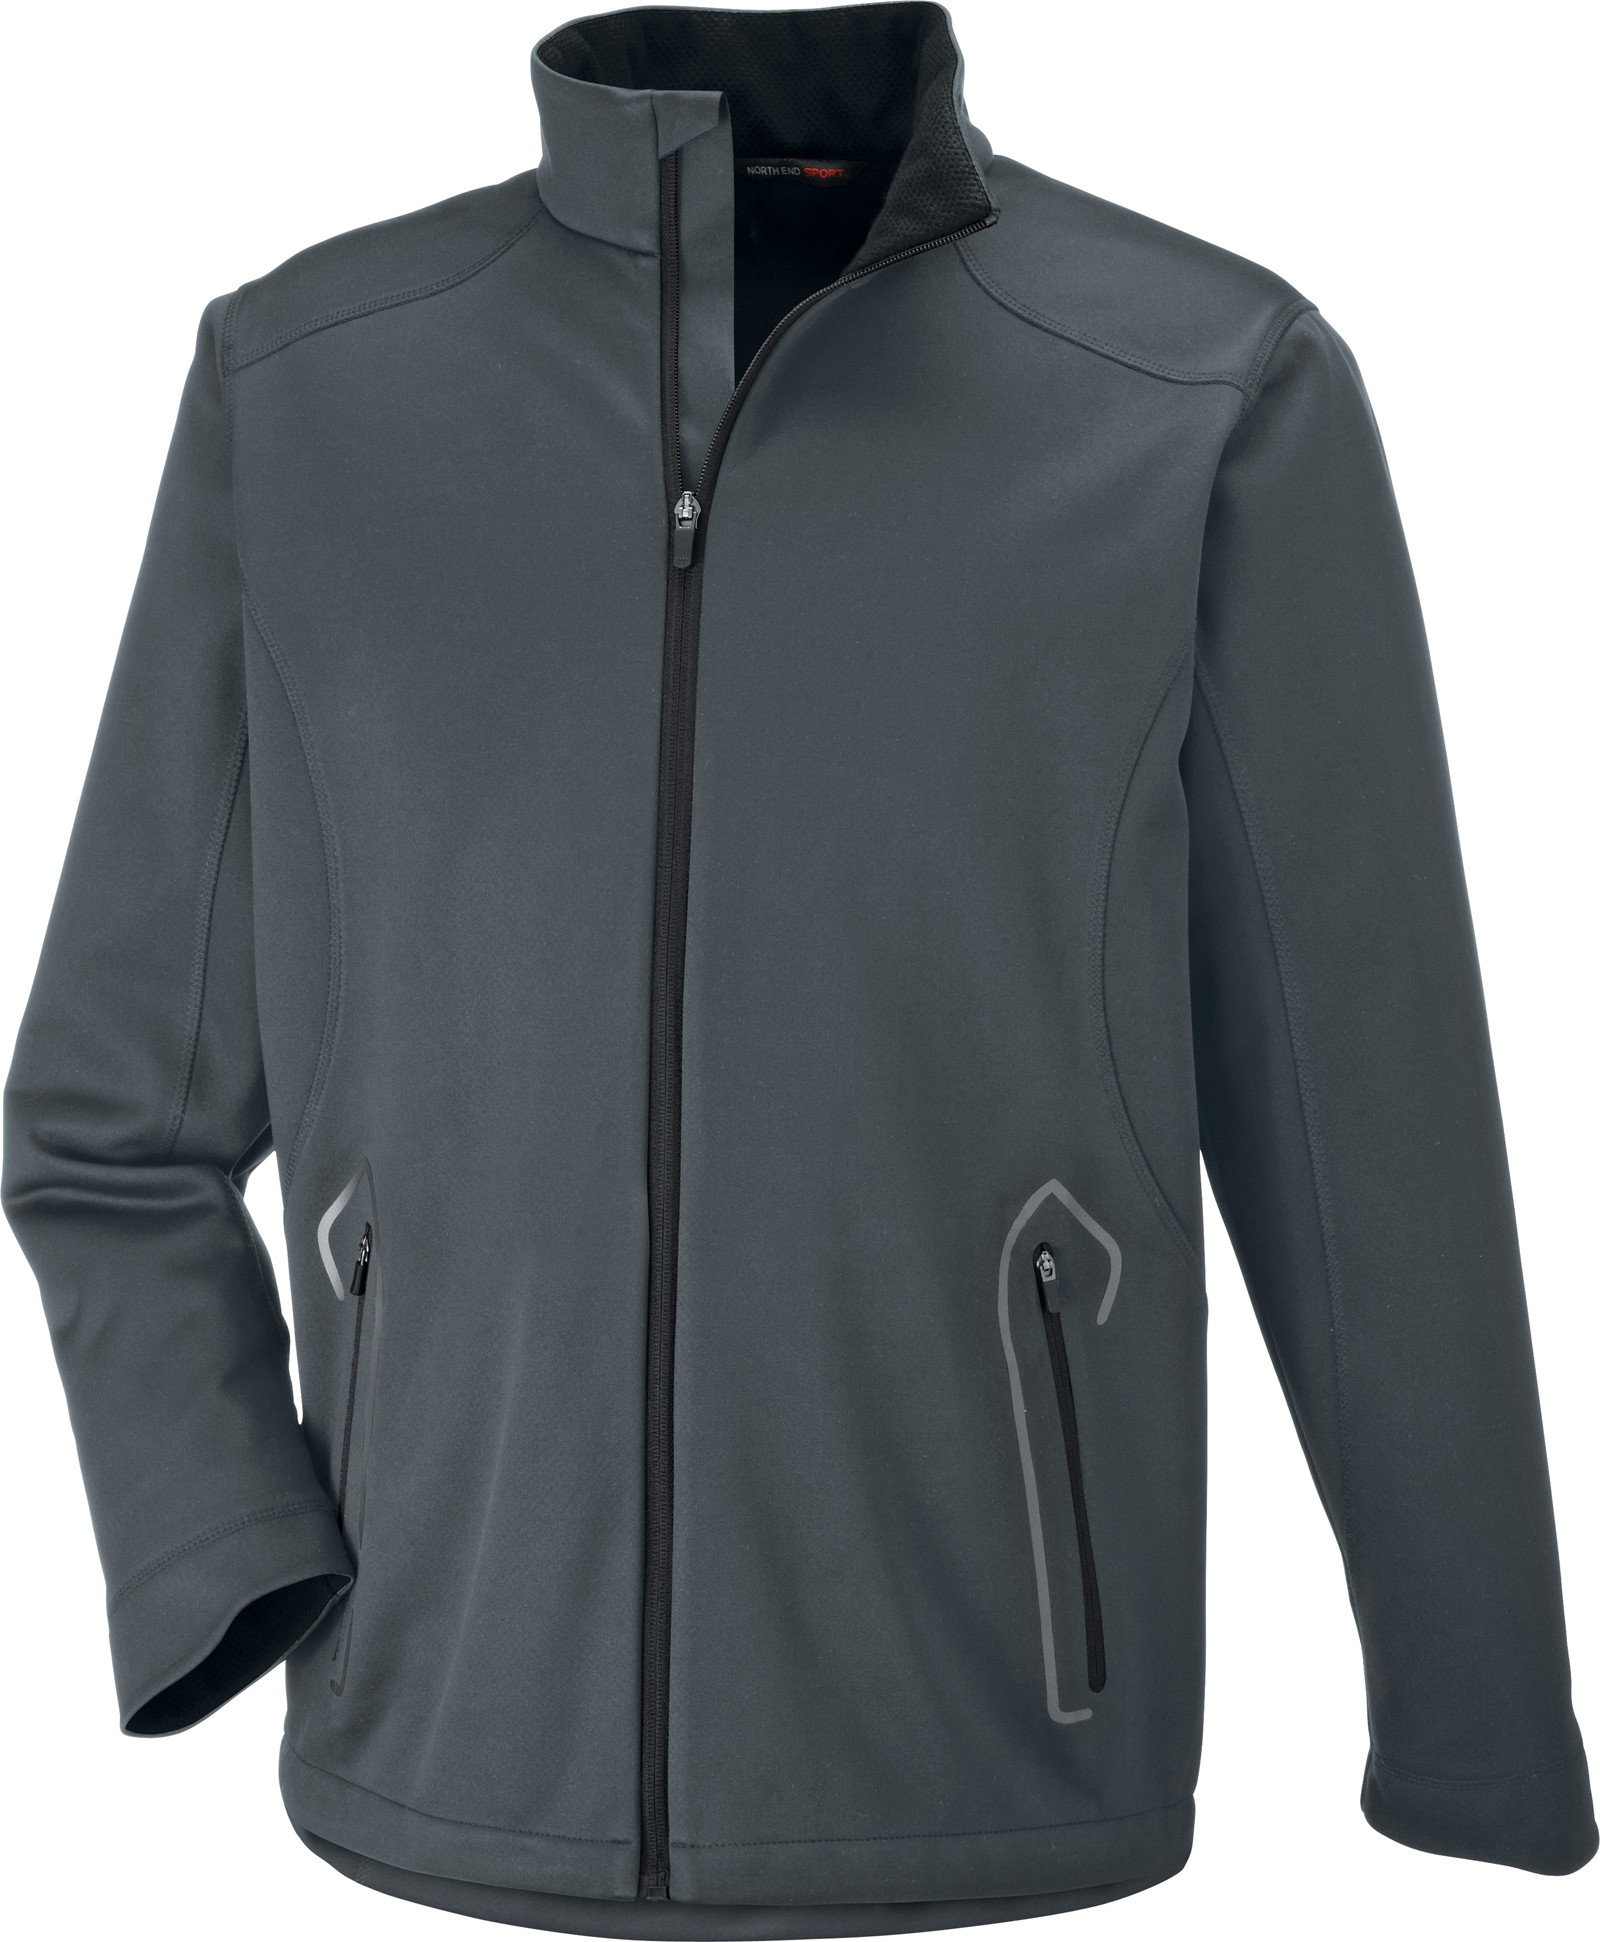 Ash City Soft Shells 88655 - Men's Soft Shell Jacket With Laser Welding